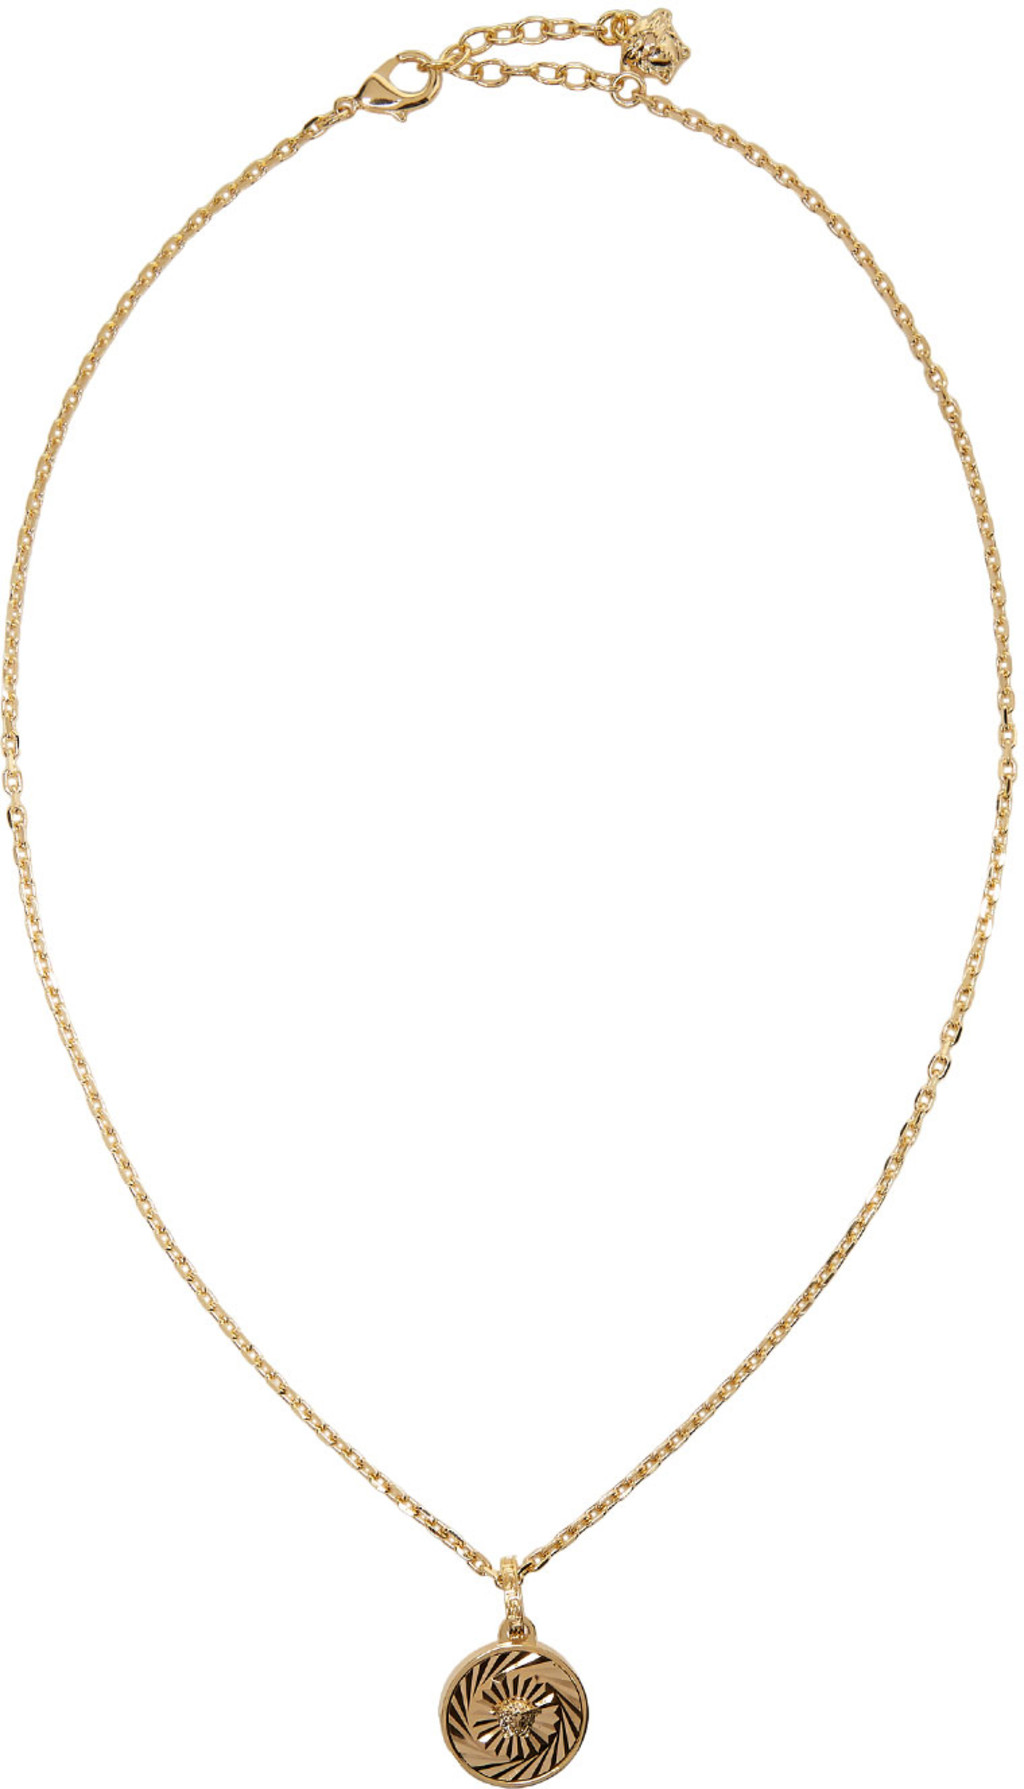 tr apc tone c a necklace p gold mael s bien